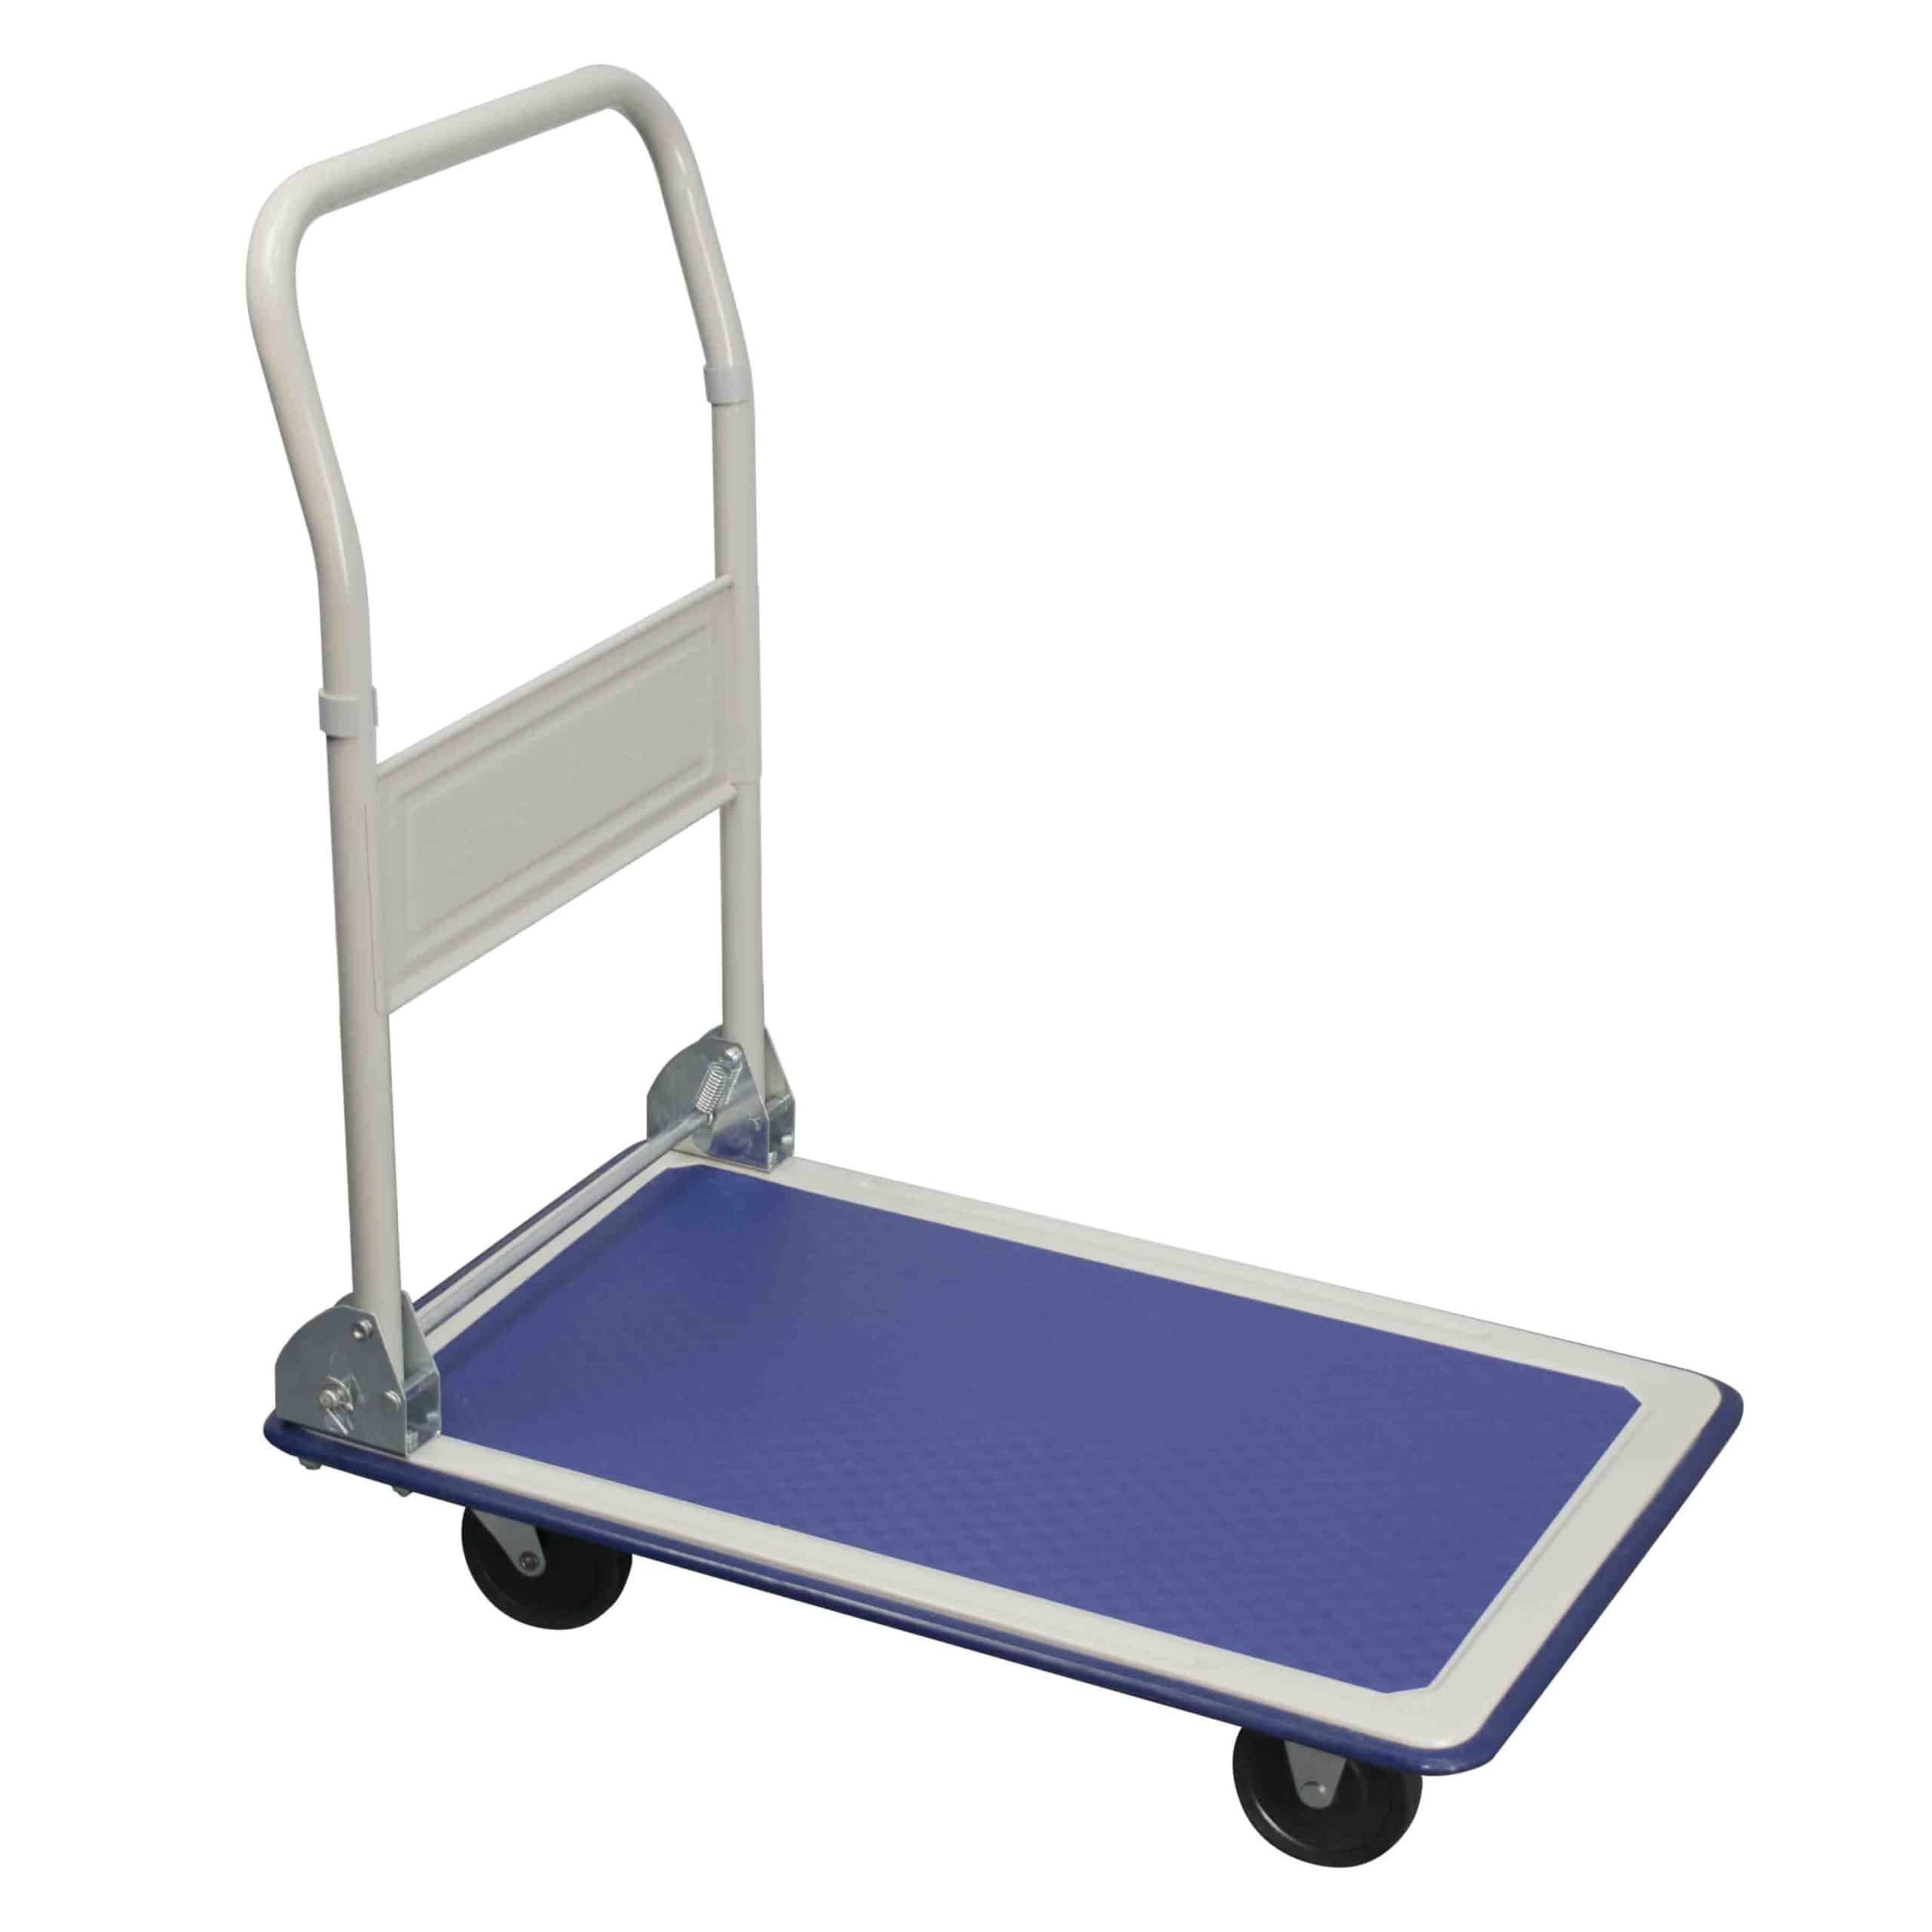 Toptruck Folding Flatbed Trolley 300kg Capacity